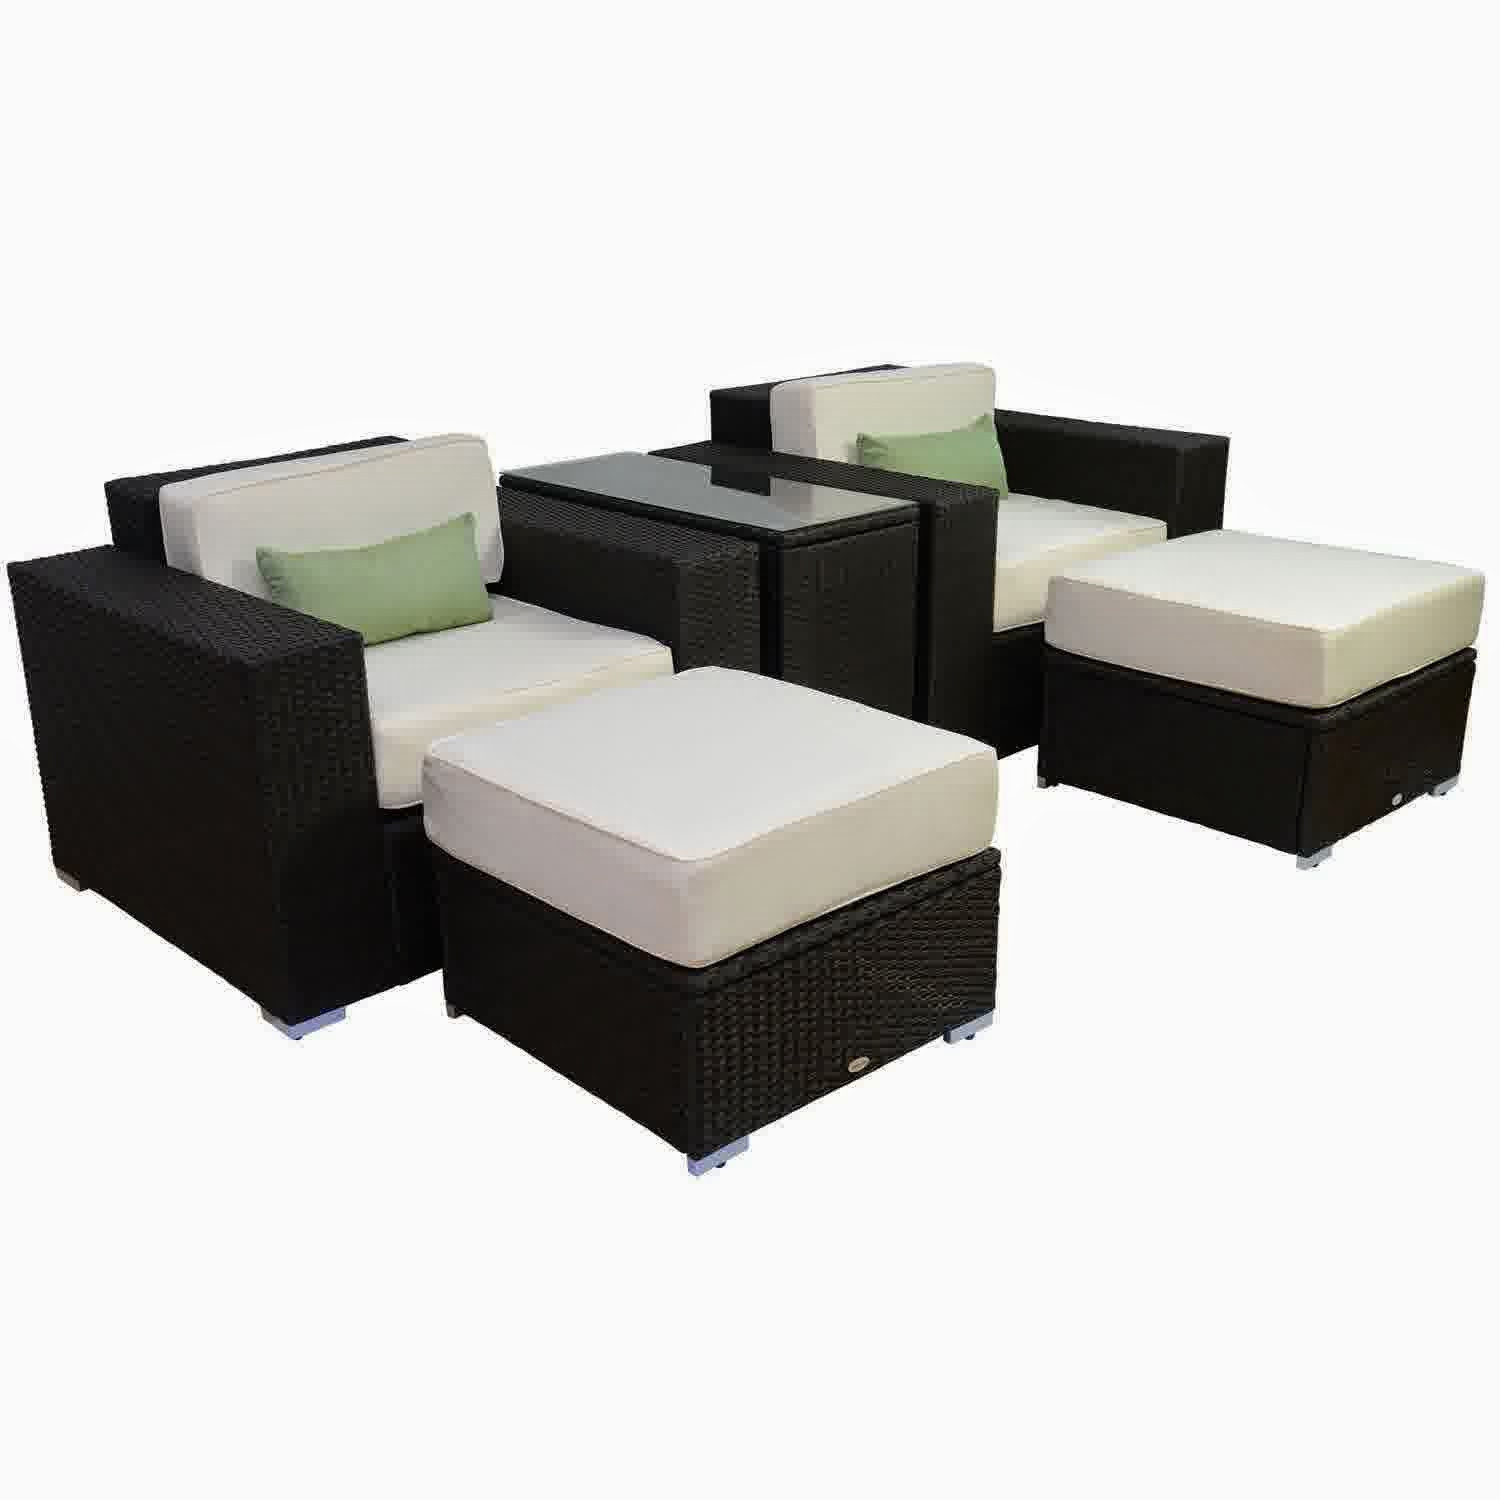 Best ideas about Outsunny Patio Furniture . Save or Pin Discount Until Outsunny 5pc Outdoor PE Rattan Wicker Now.